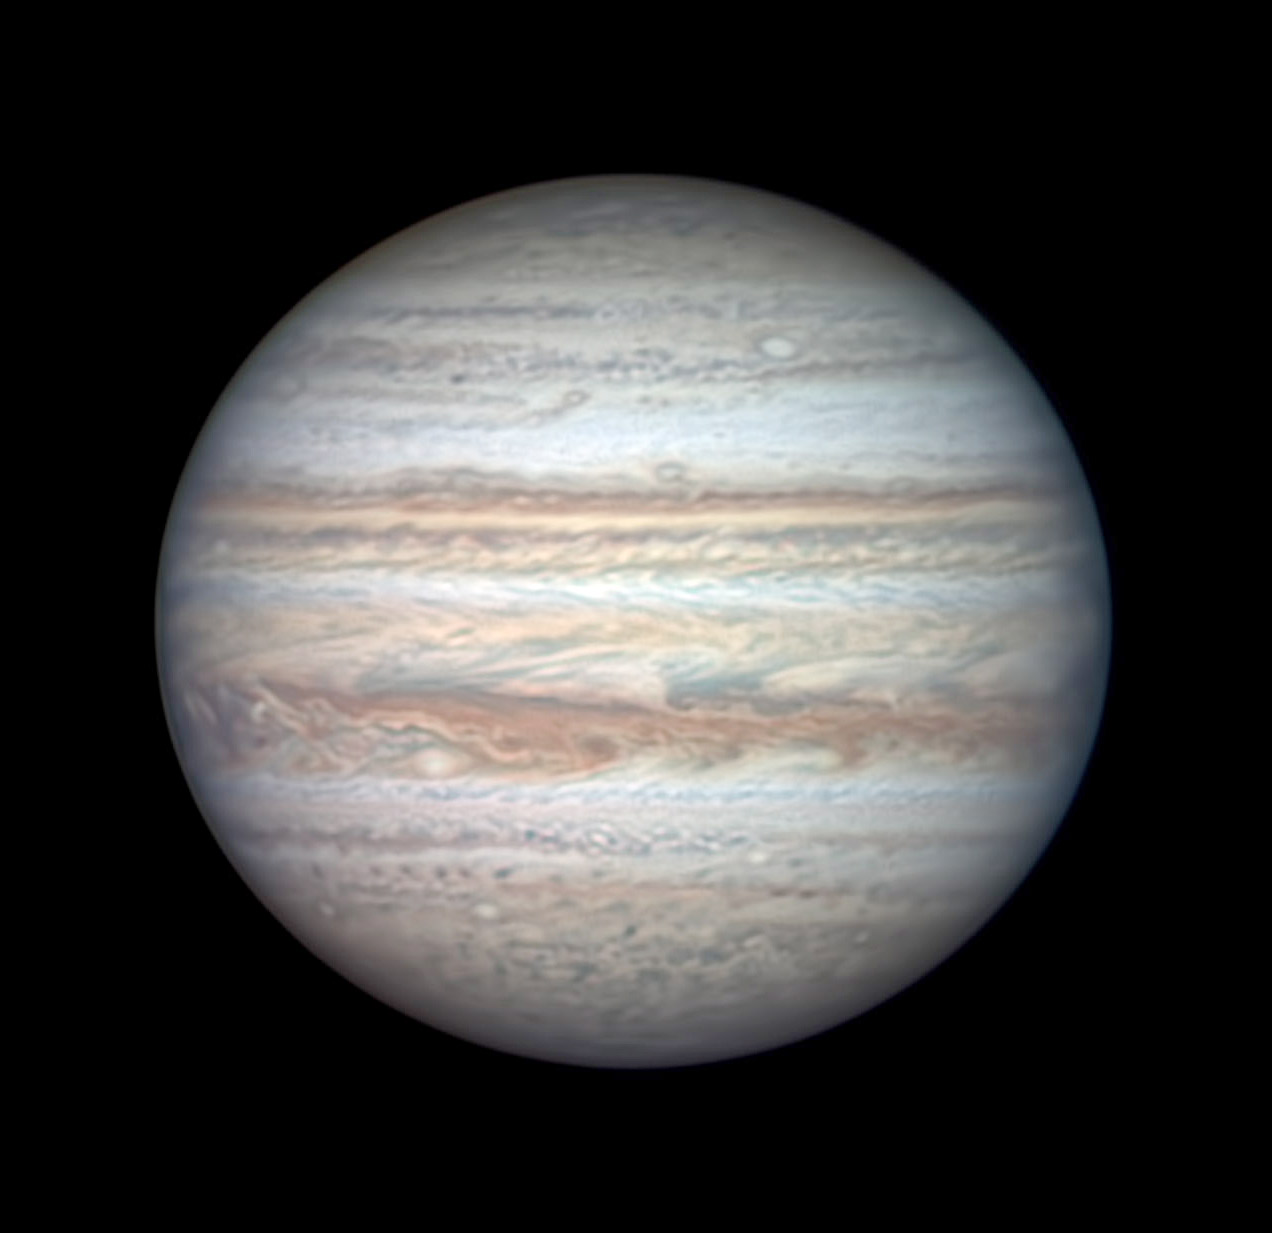 Jupiter on July 26, 2020 (non-Great-Red-Spot side)